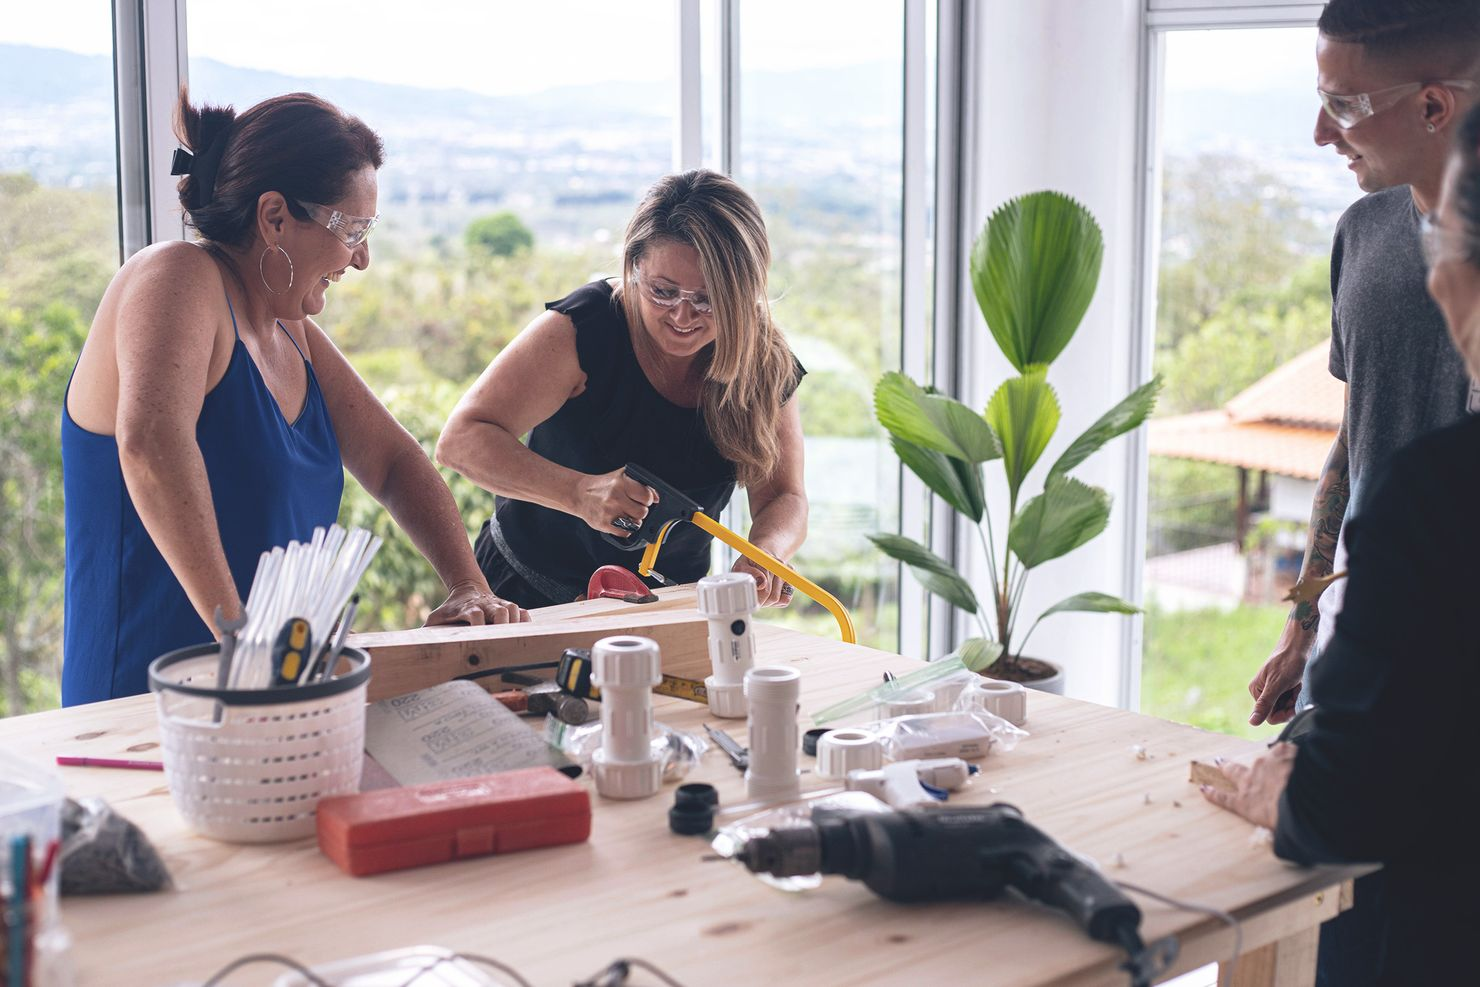 two women smile and laugh while sawing a piece of wood during a team building activity as colleagues admire their handiwork